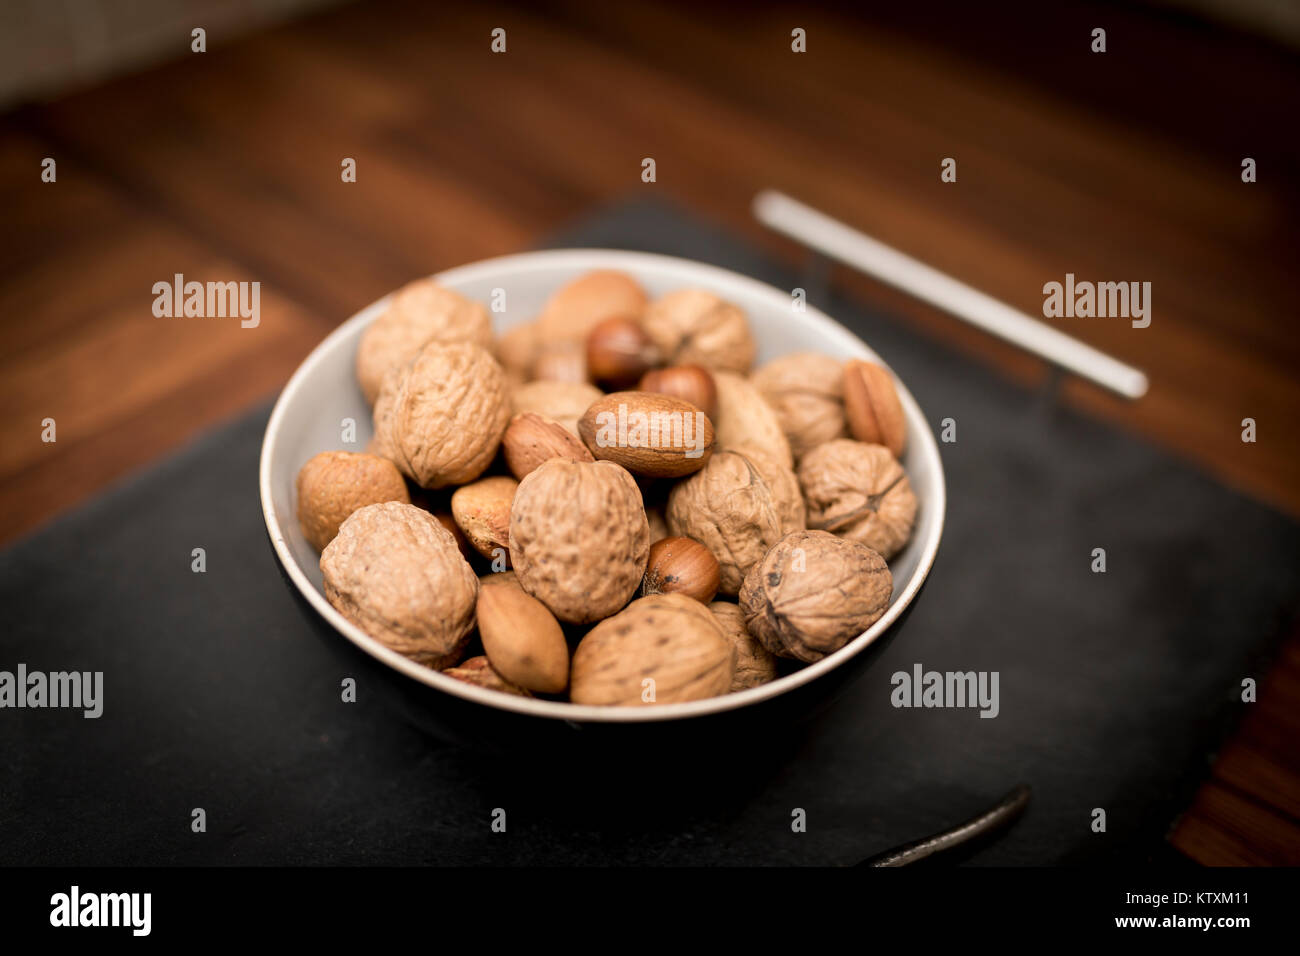 A bowl of mixed whole nuts in their shells including walnuts, hazelnuts, almonds and pecans with a short depth of - Stock Image